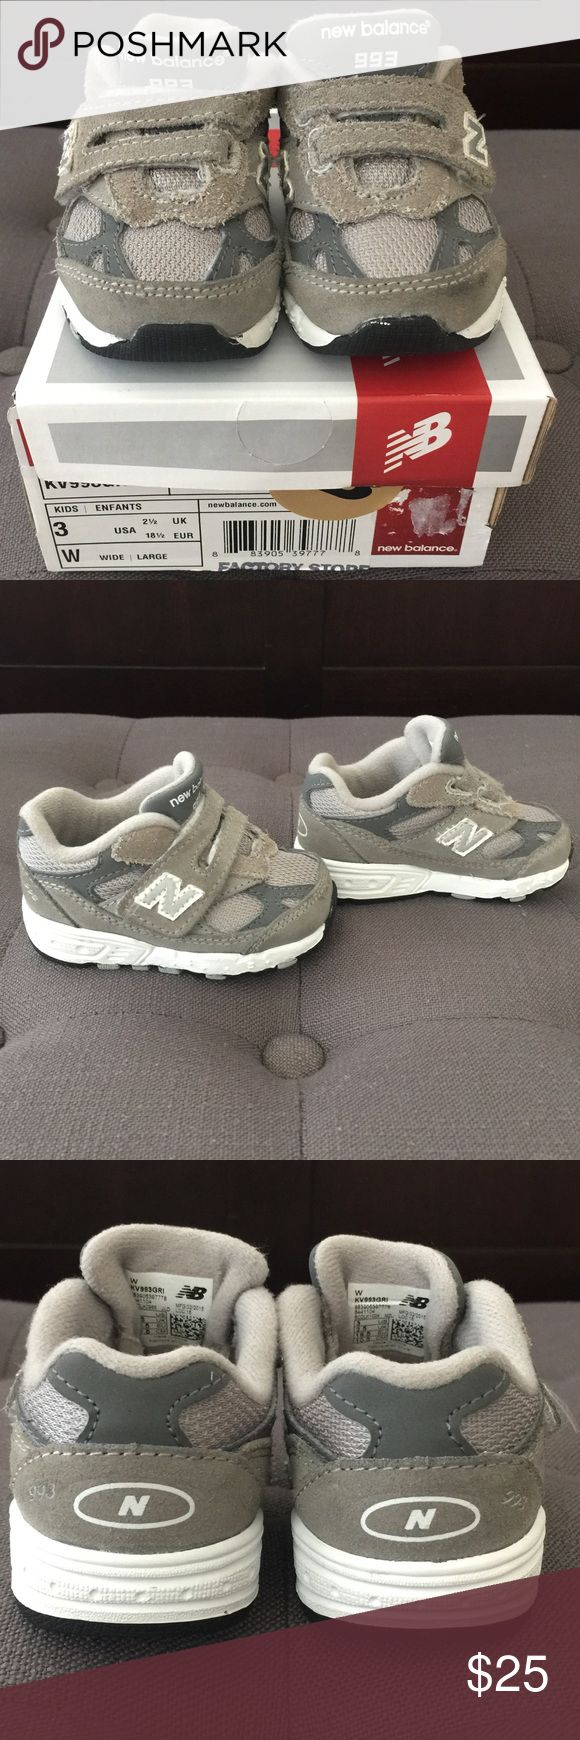 Toddler New Balance sneakers Good used condition. Some dirt marks on the front but no other real signs of wear. Purchased at a factory store while we were out of town. Size 3wide and come with original box. New Balance Shoes Sneakers